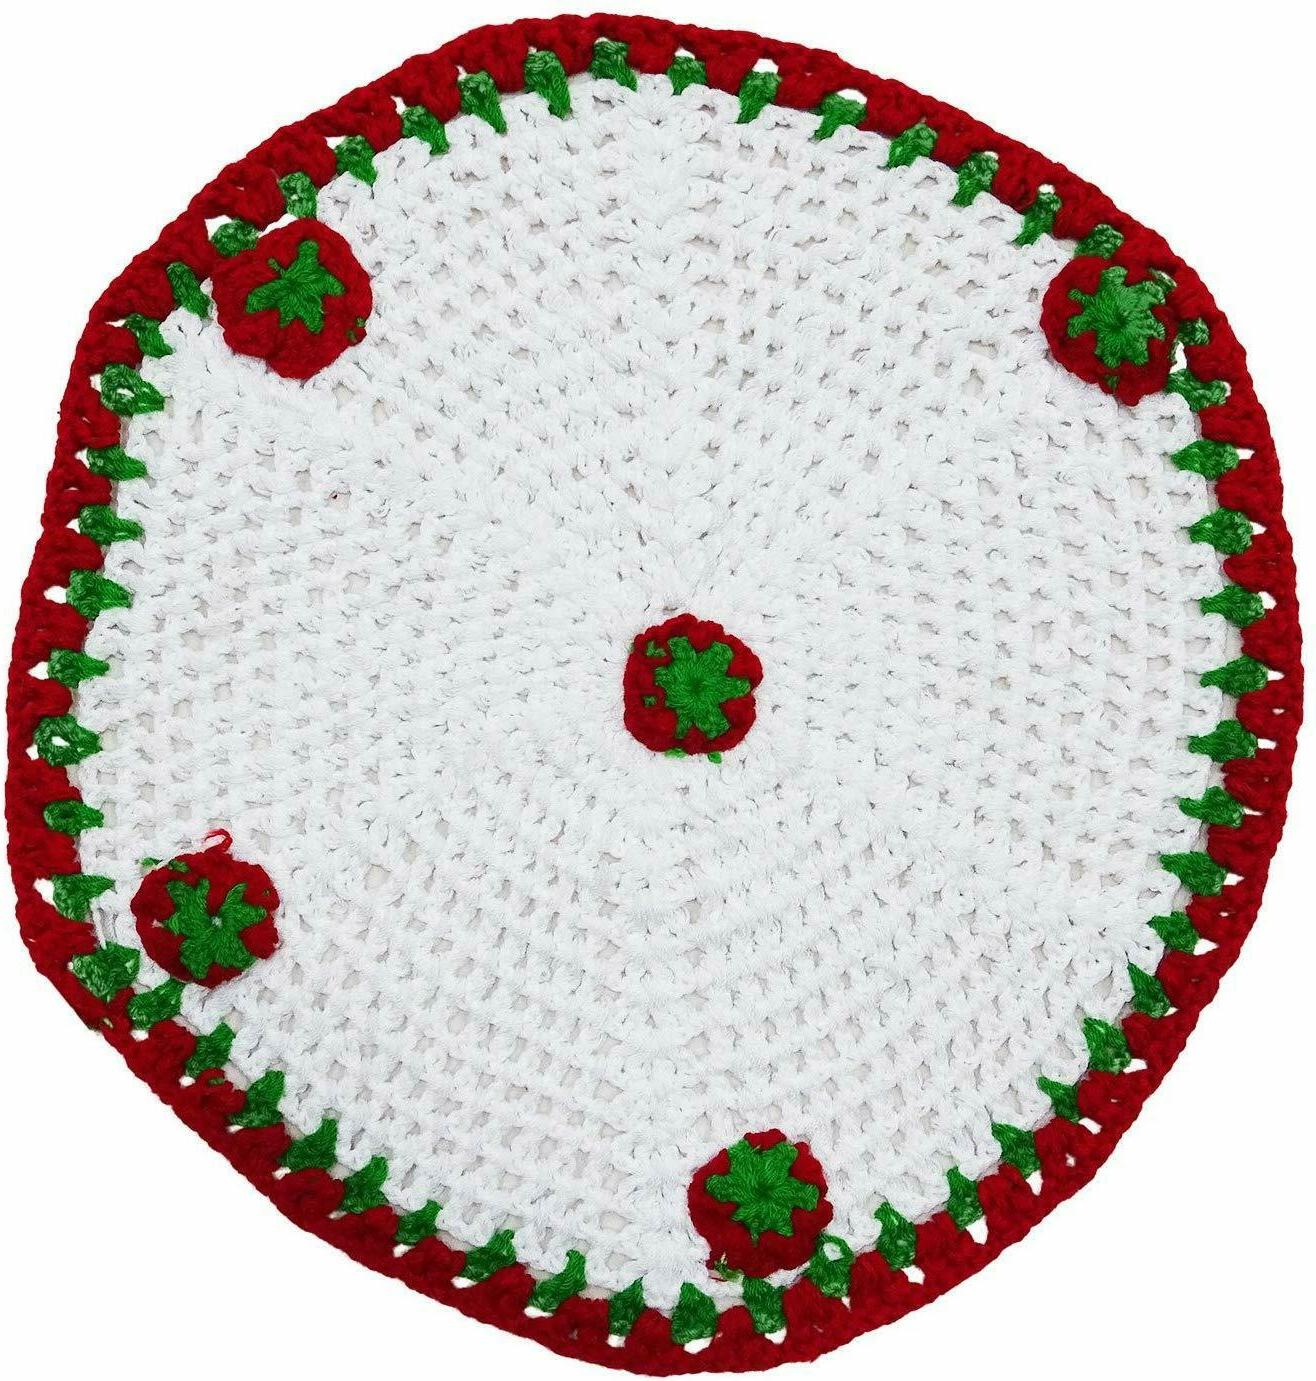 Indian Pattern Round Table Runner Handmade Home HDP08